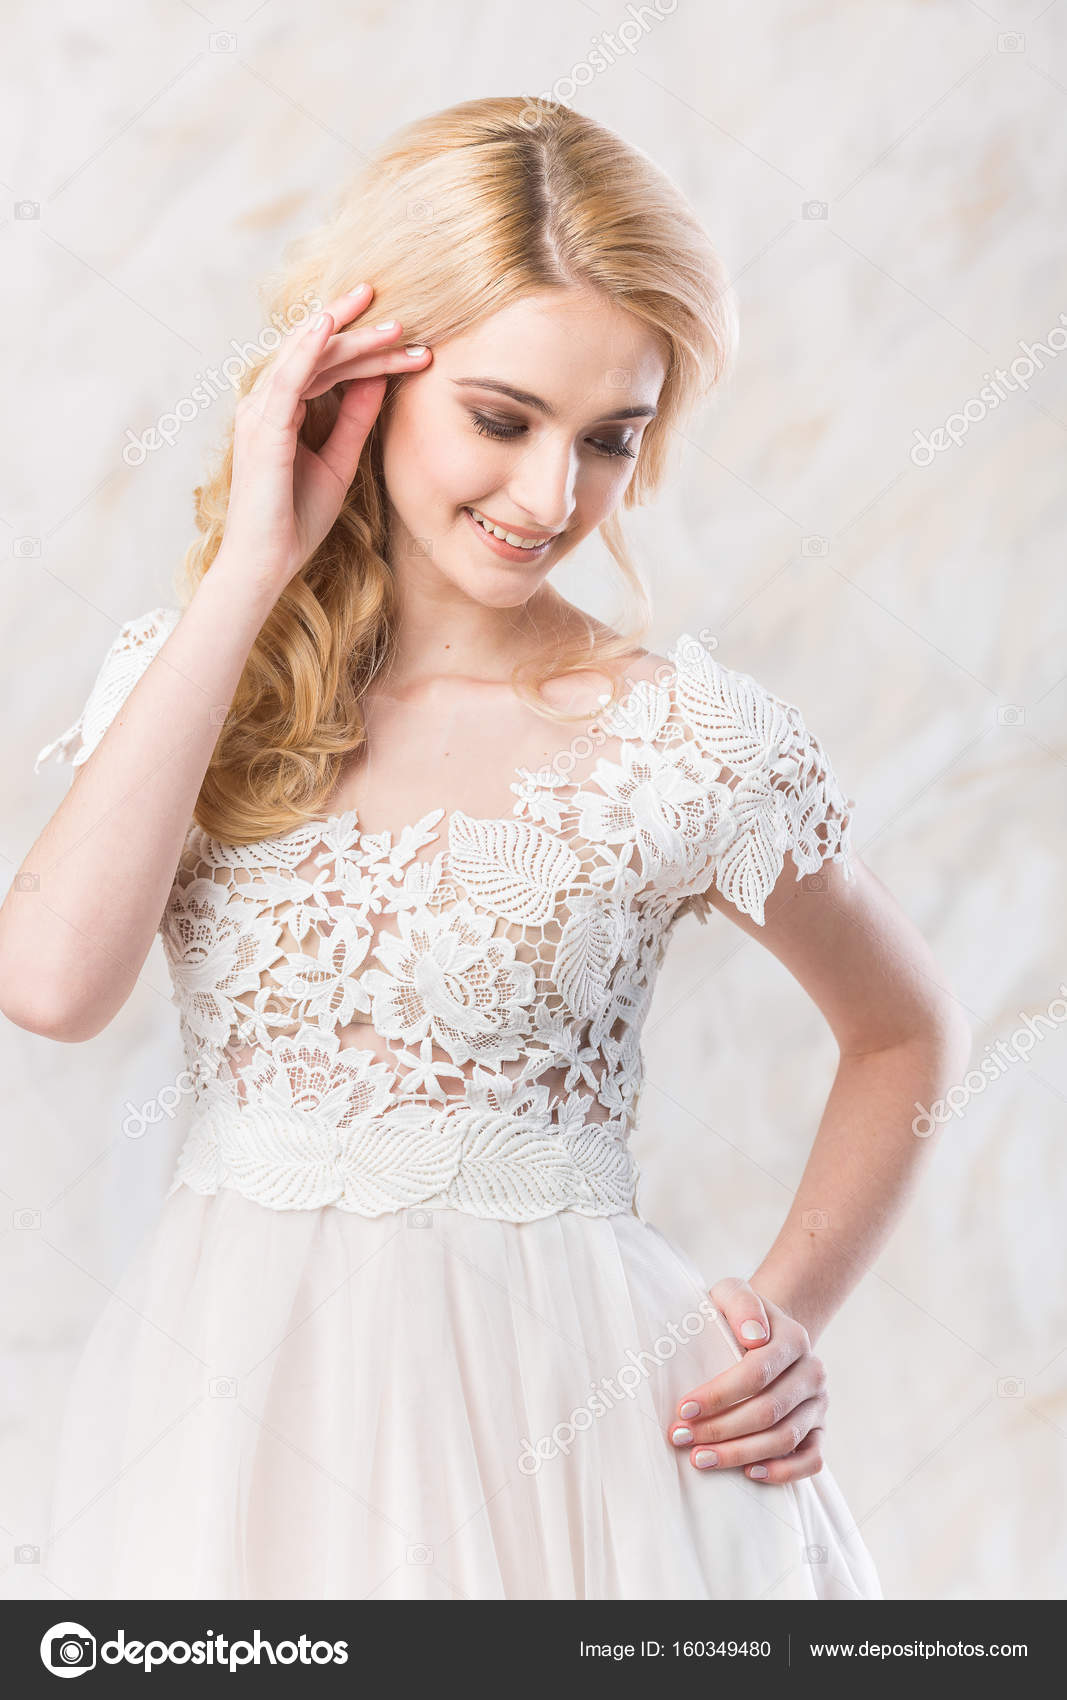 wedding dress, beautiful blonde model, bride hairstyle and makeup ...